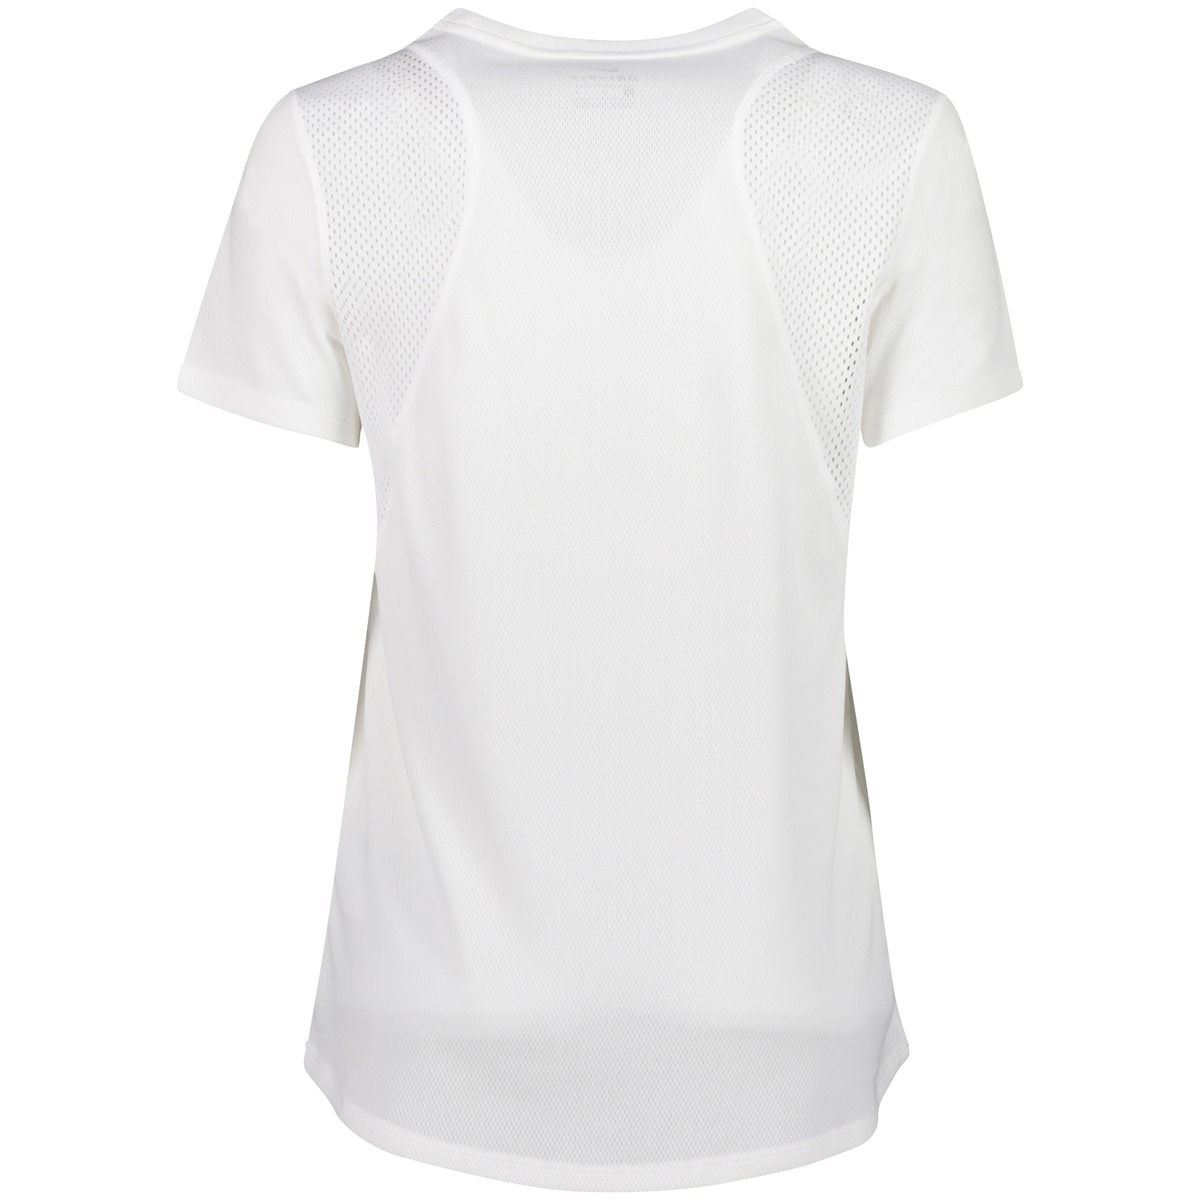 Run Short Sleeve Top, t-skjorte dame